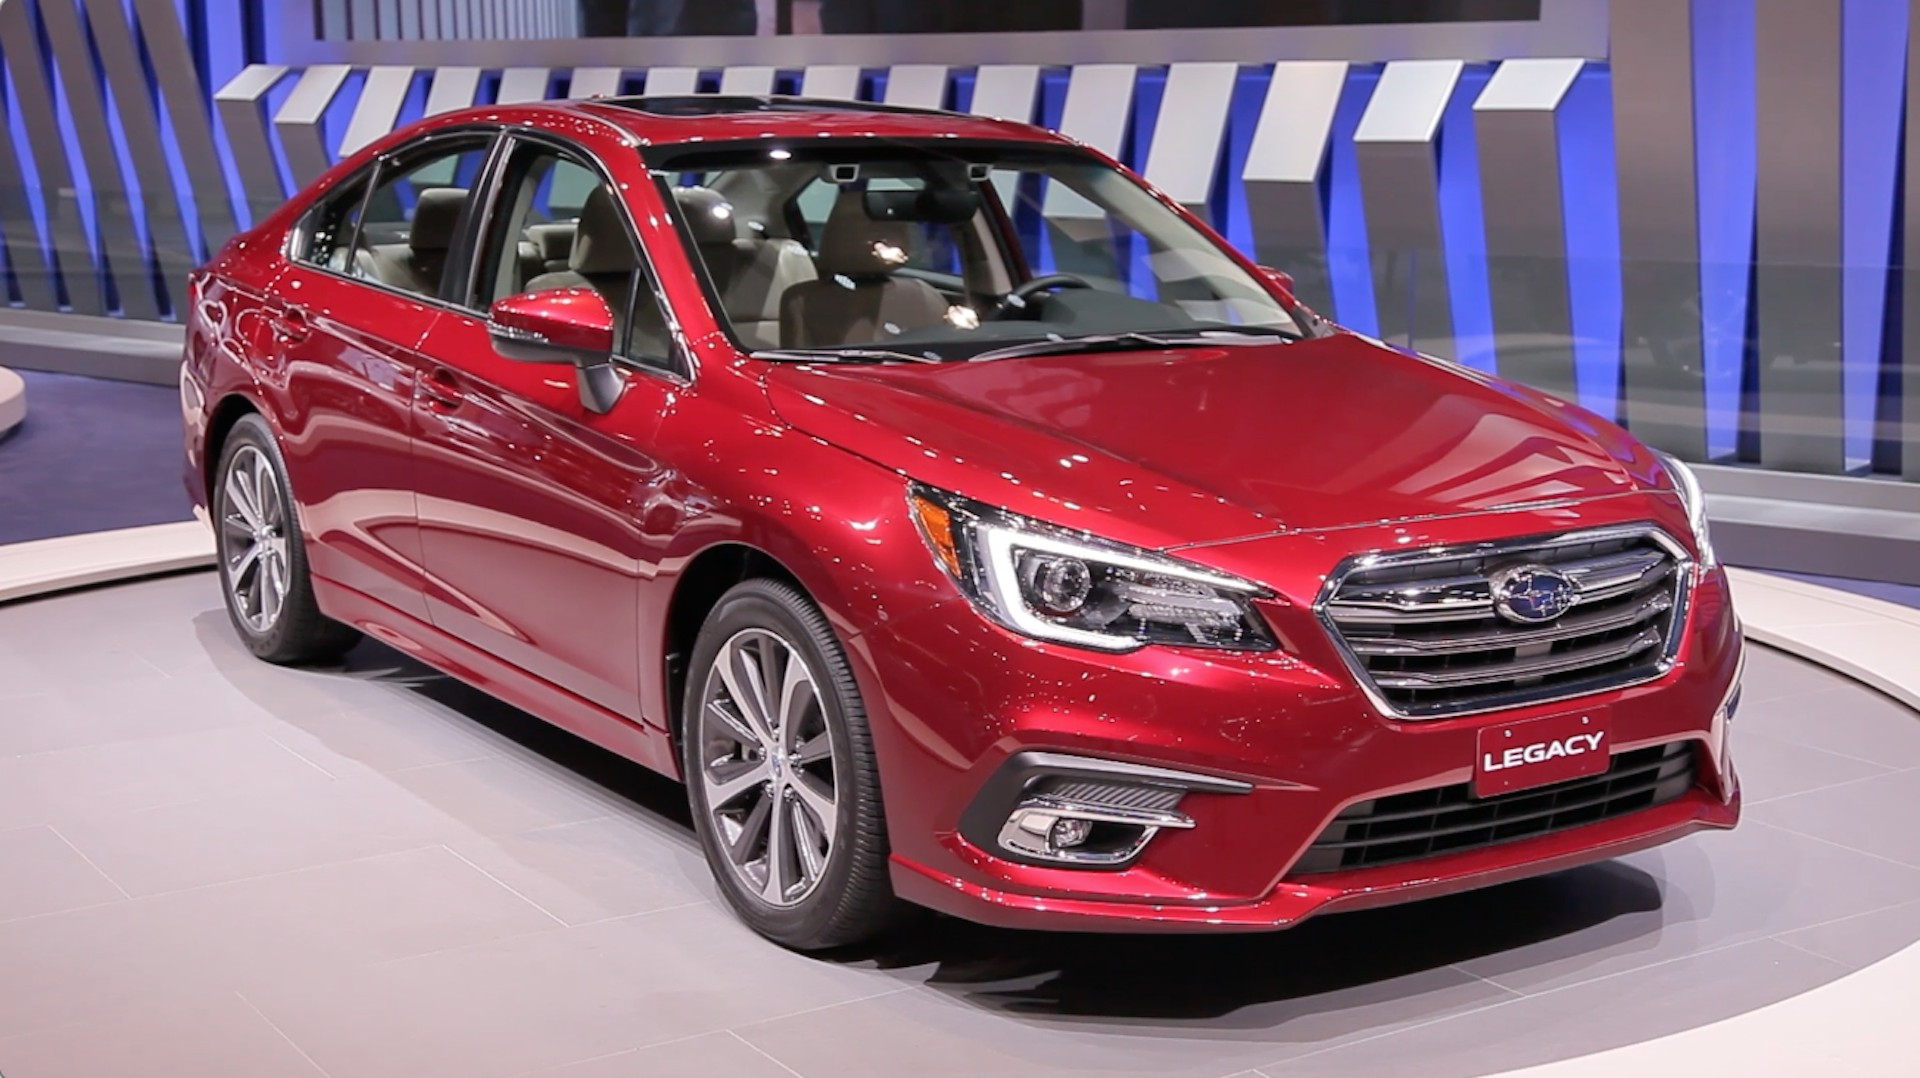 Subaru Kansas City >> 2018 Subaru Legacy video preview